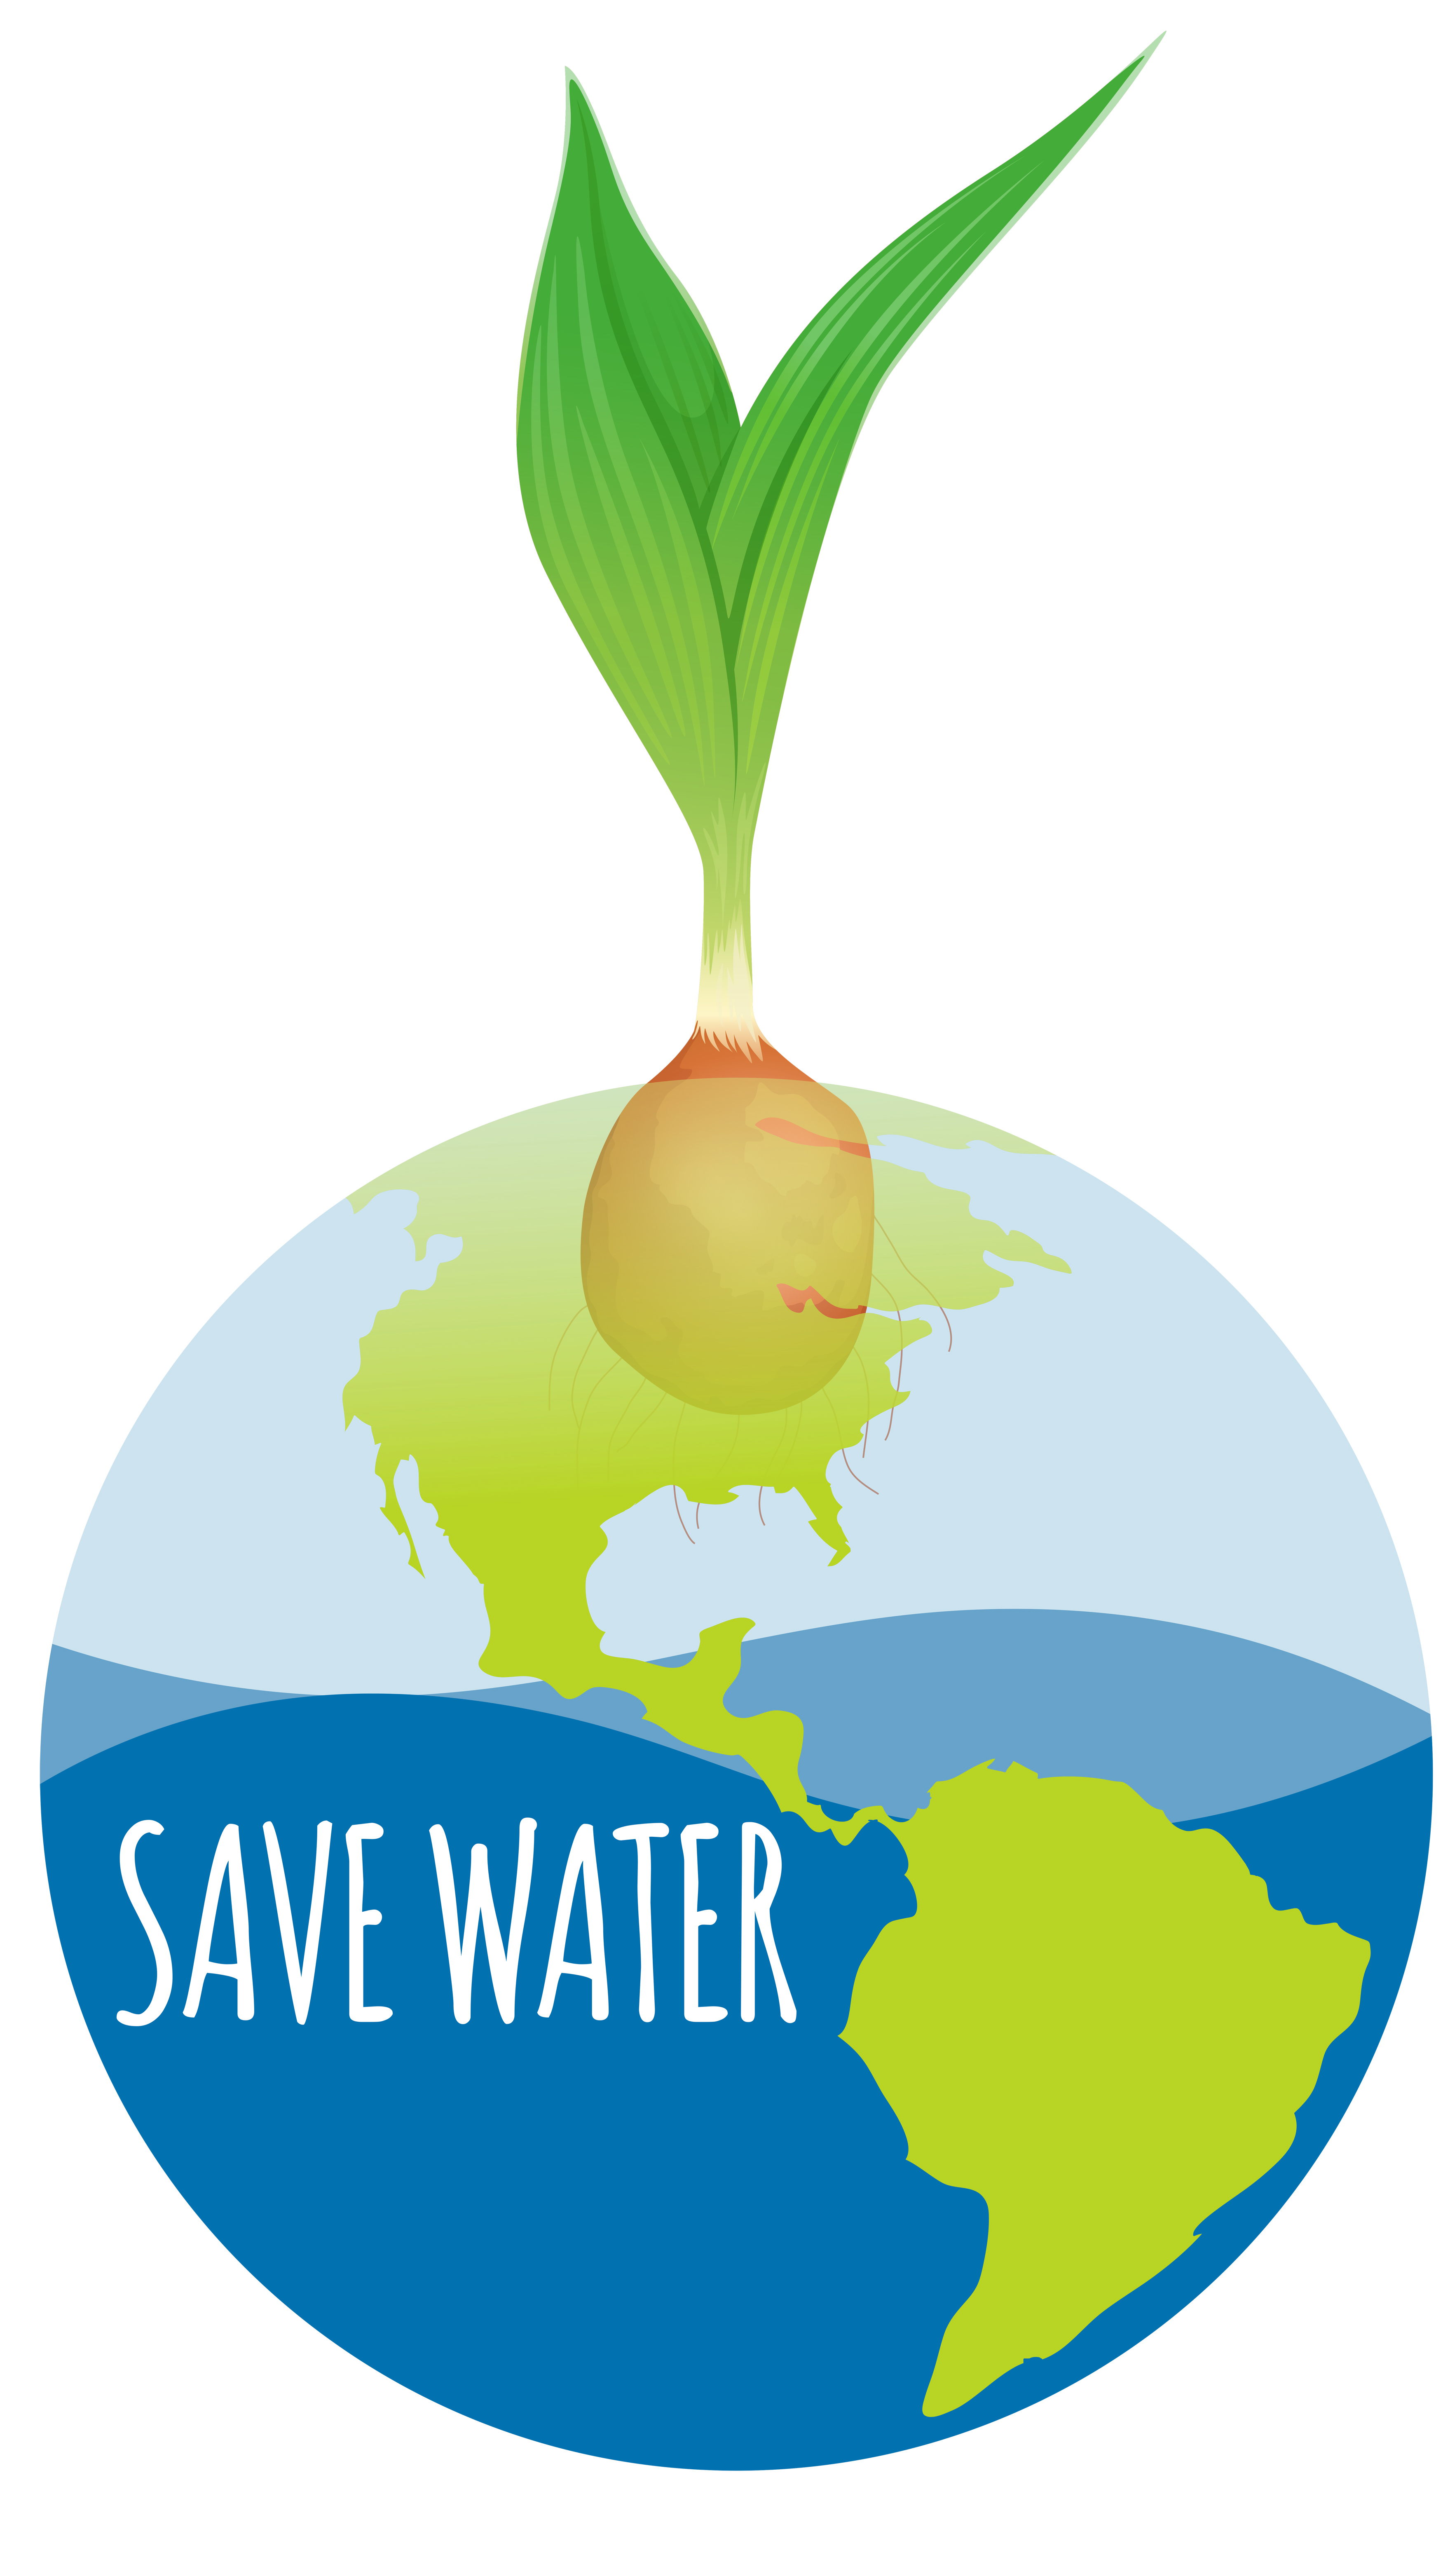 Save Water Diagram With Earth And Plant